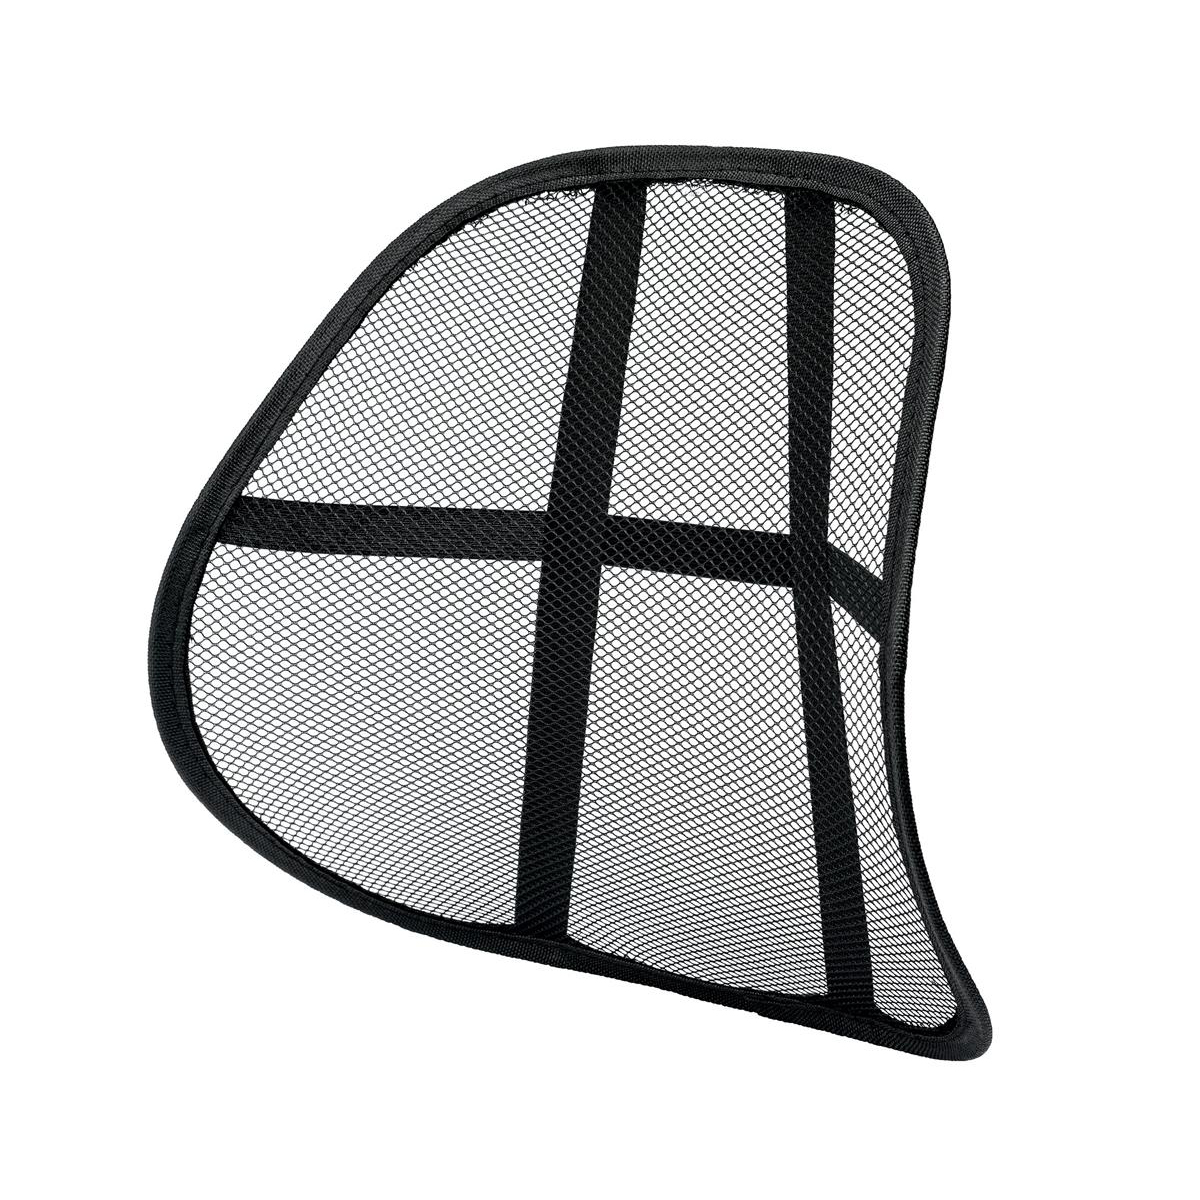 Back support rests 5 Star Office Mesh Back Rest Black Ref 936677